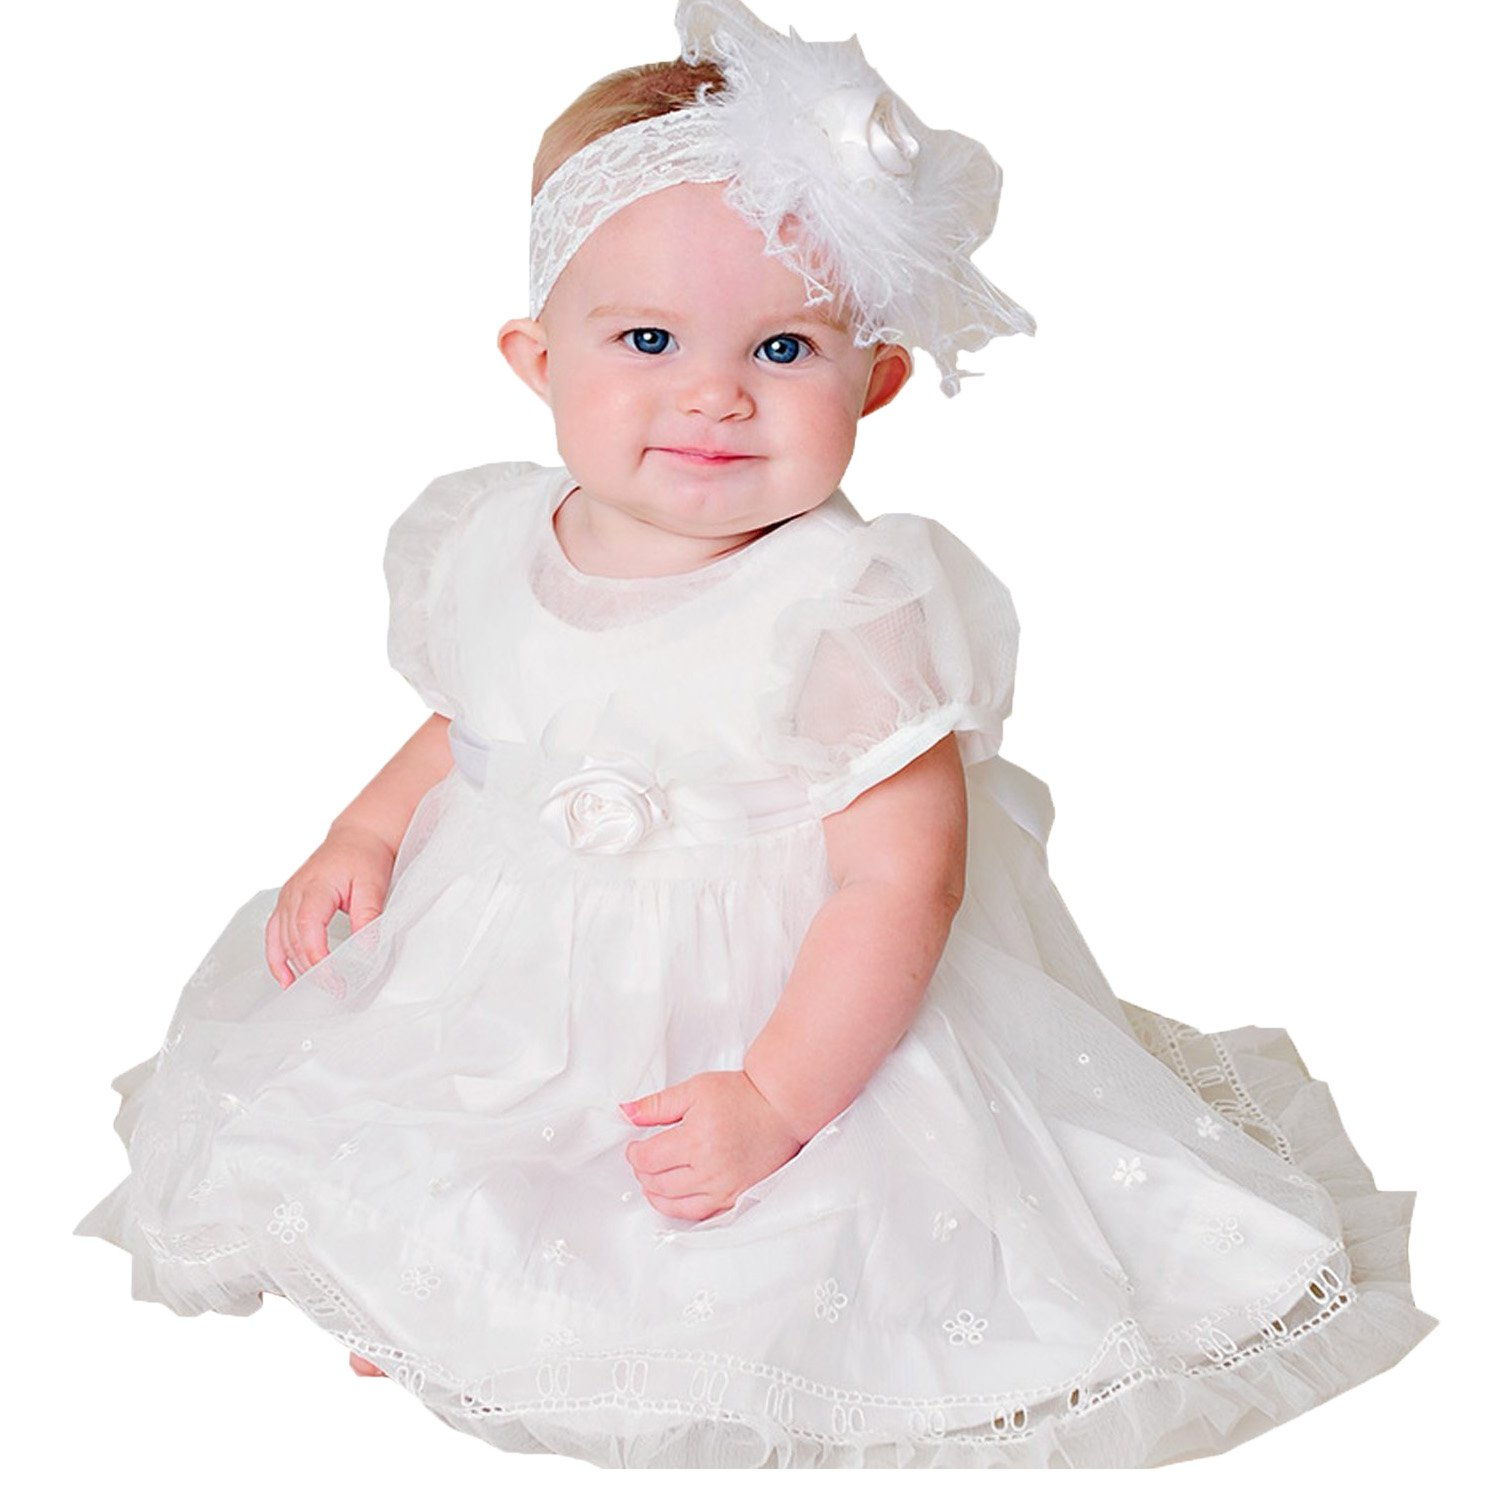 Fenghuavip Scoop Tulle Baby Girl's Christening Gowns White(18-24 Months)